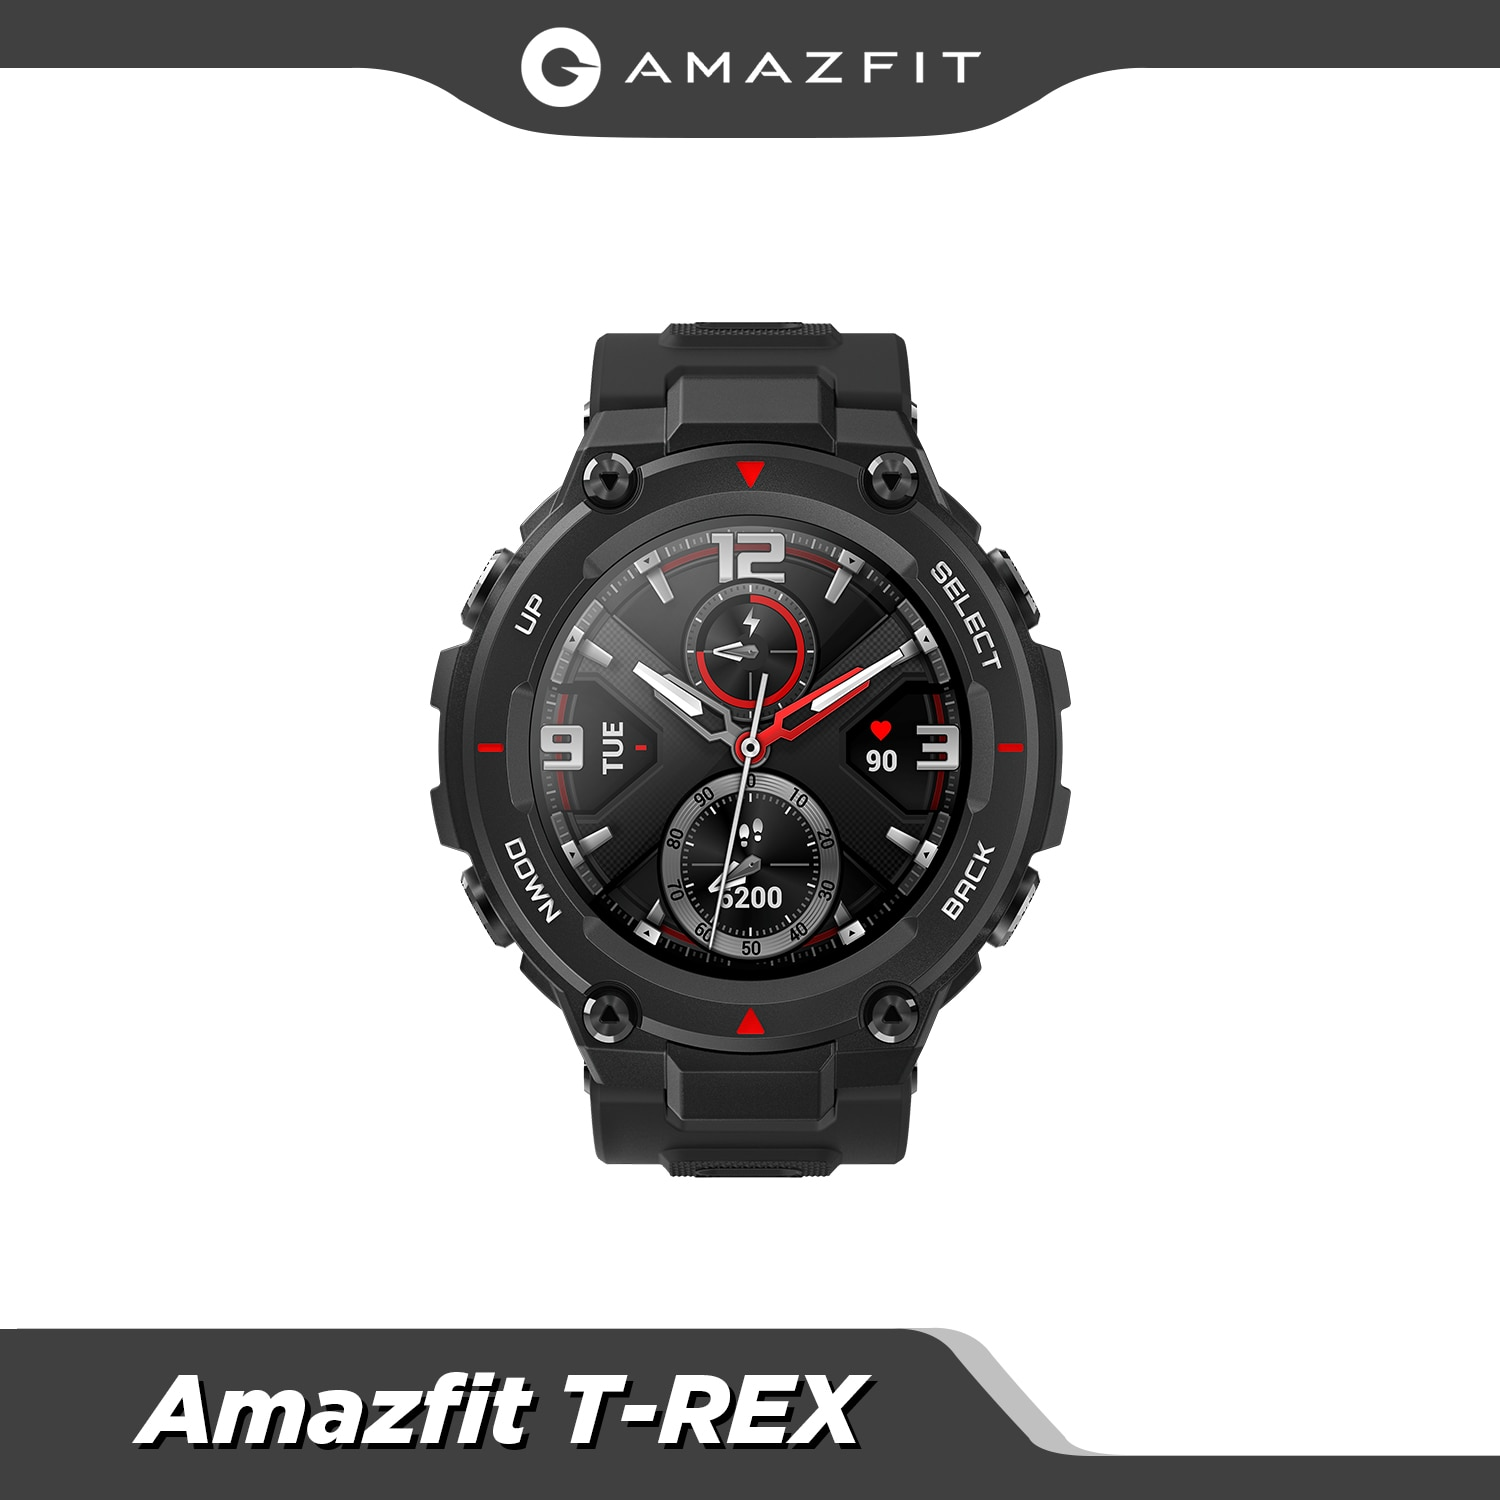 Promo In stock 2020 CES Amazfit T-rex T rex Smartwatch 5ATM waterproof Smart Watch GPS/GLONASS AMOLED Screen for iOS Android